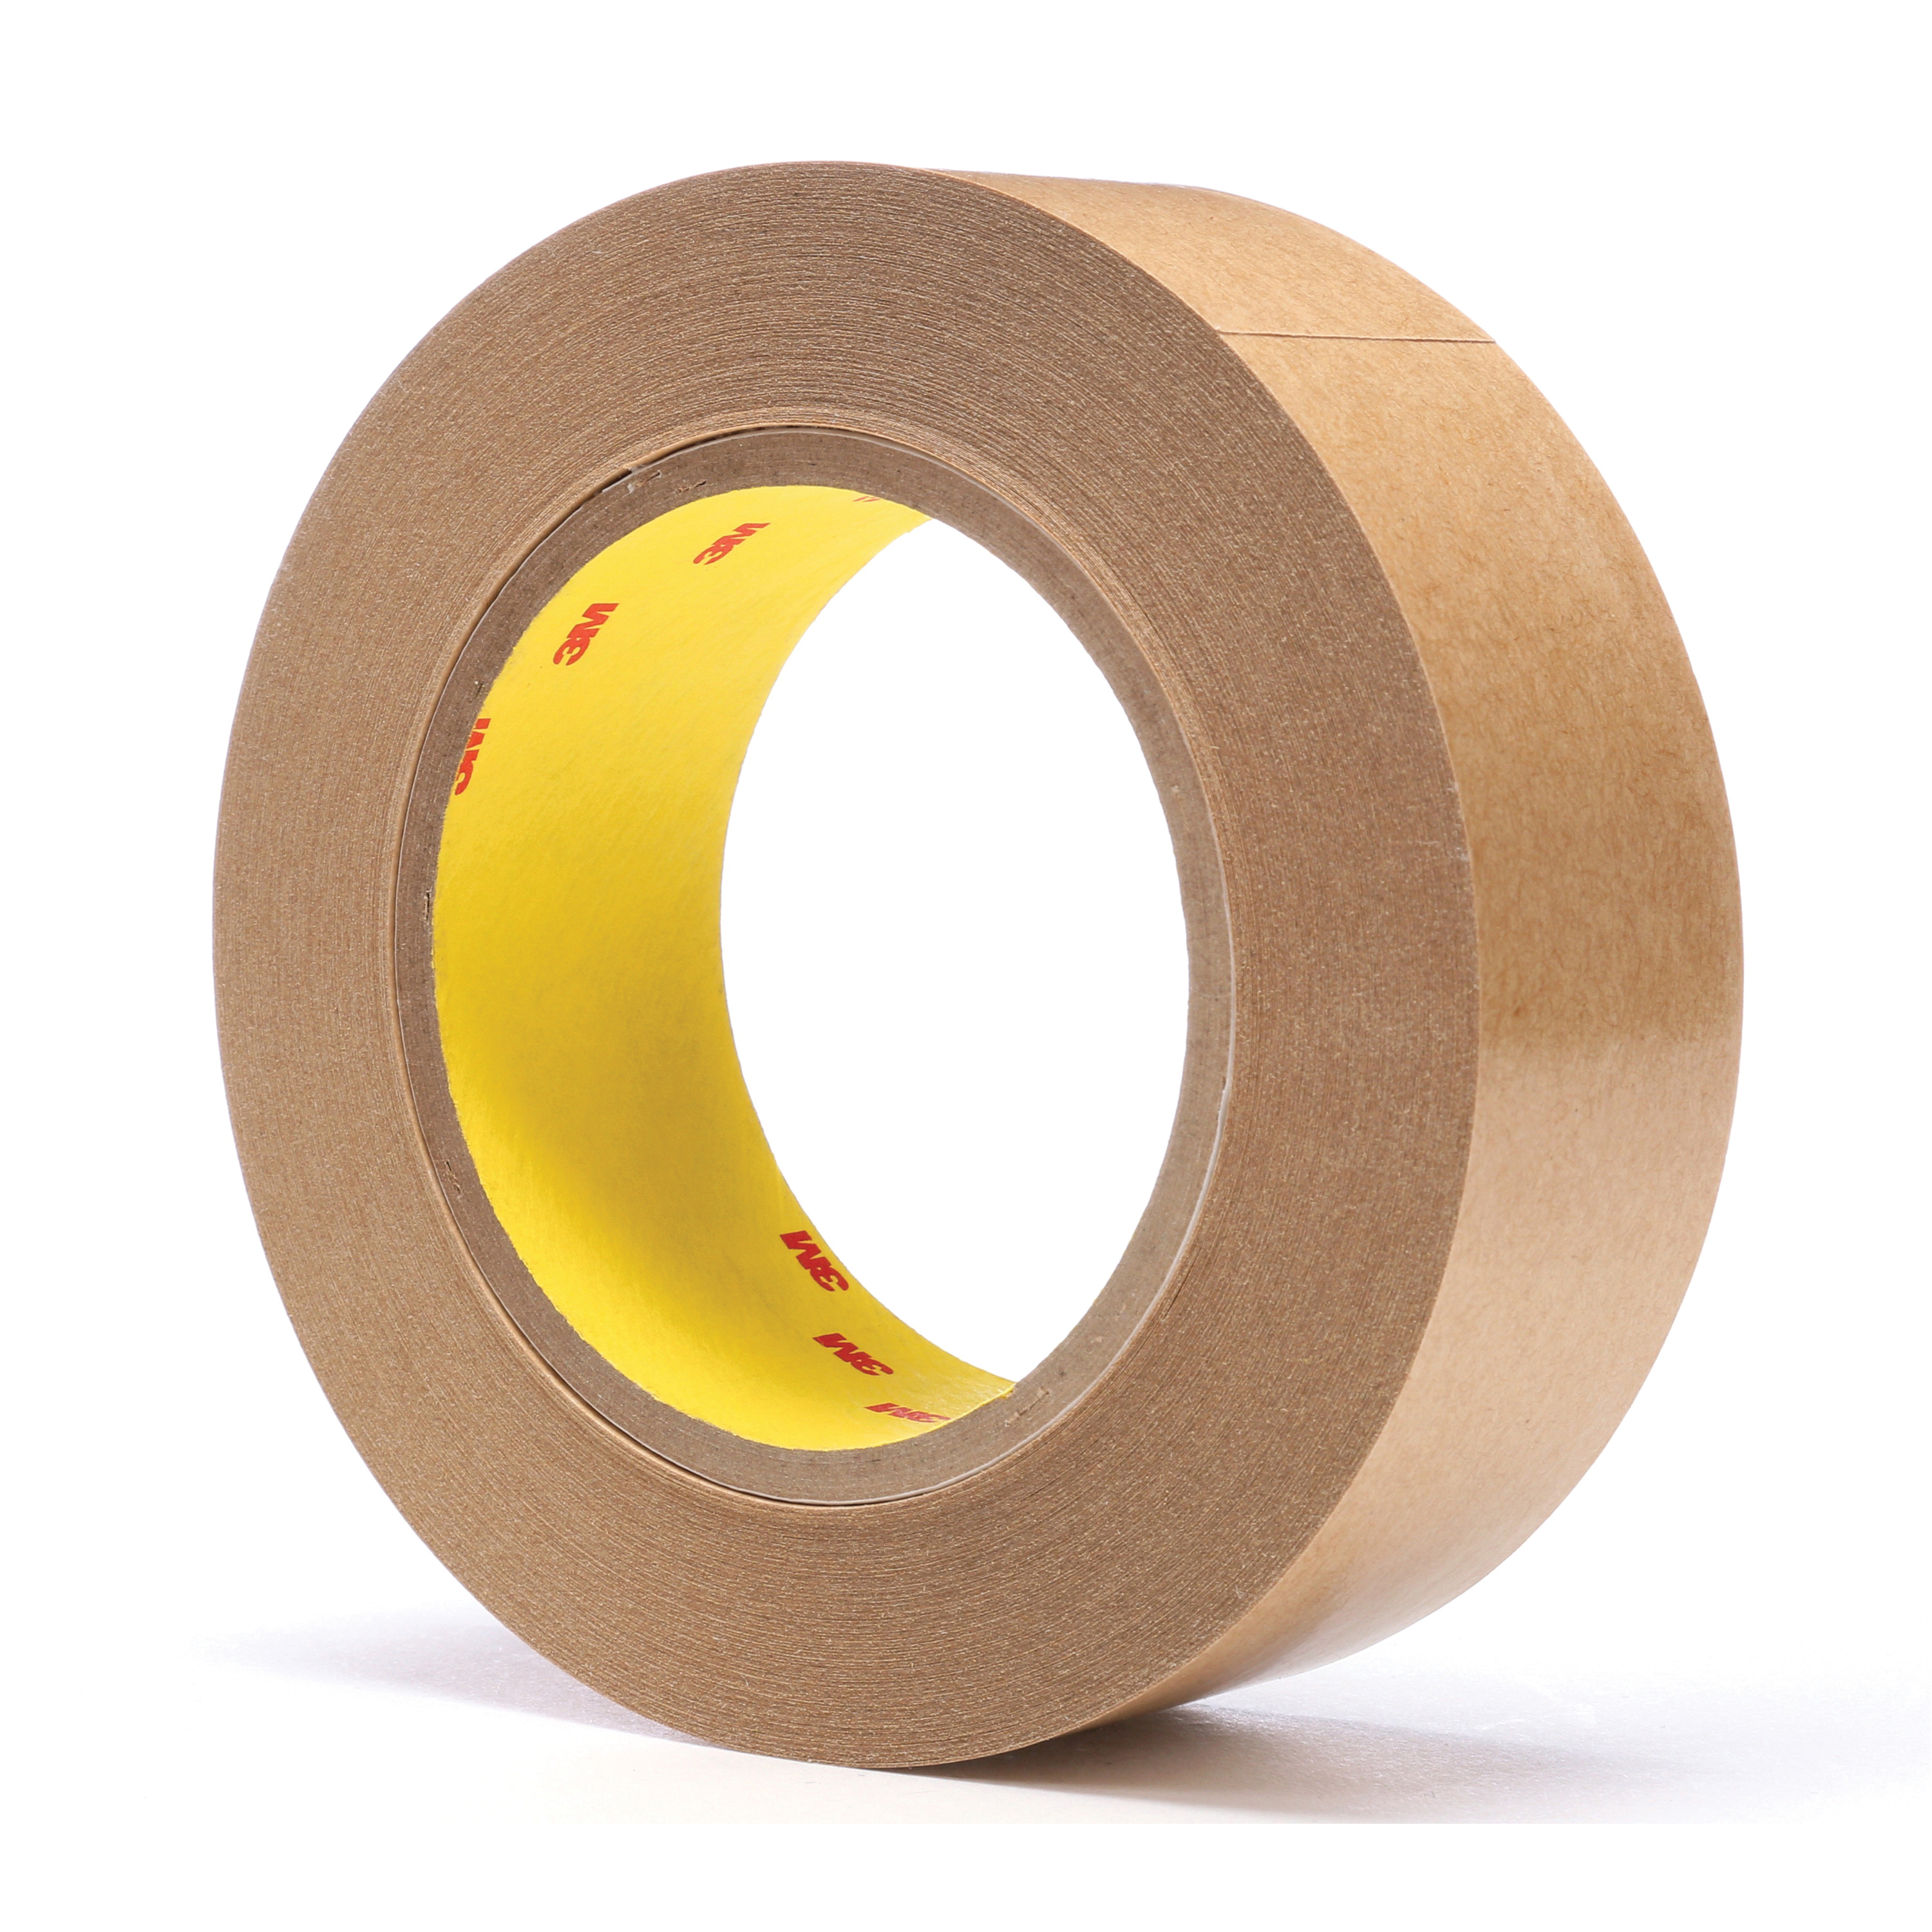 3M™ 021200-03338 Fibered General Purpose Adhesive Transfer Tape, 60 yd L x 1-1/2 in W, 2 mil THK, 2 mil 400 Acrylic Adhesive, Clear